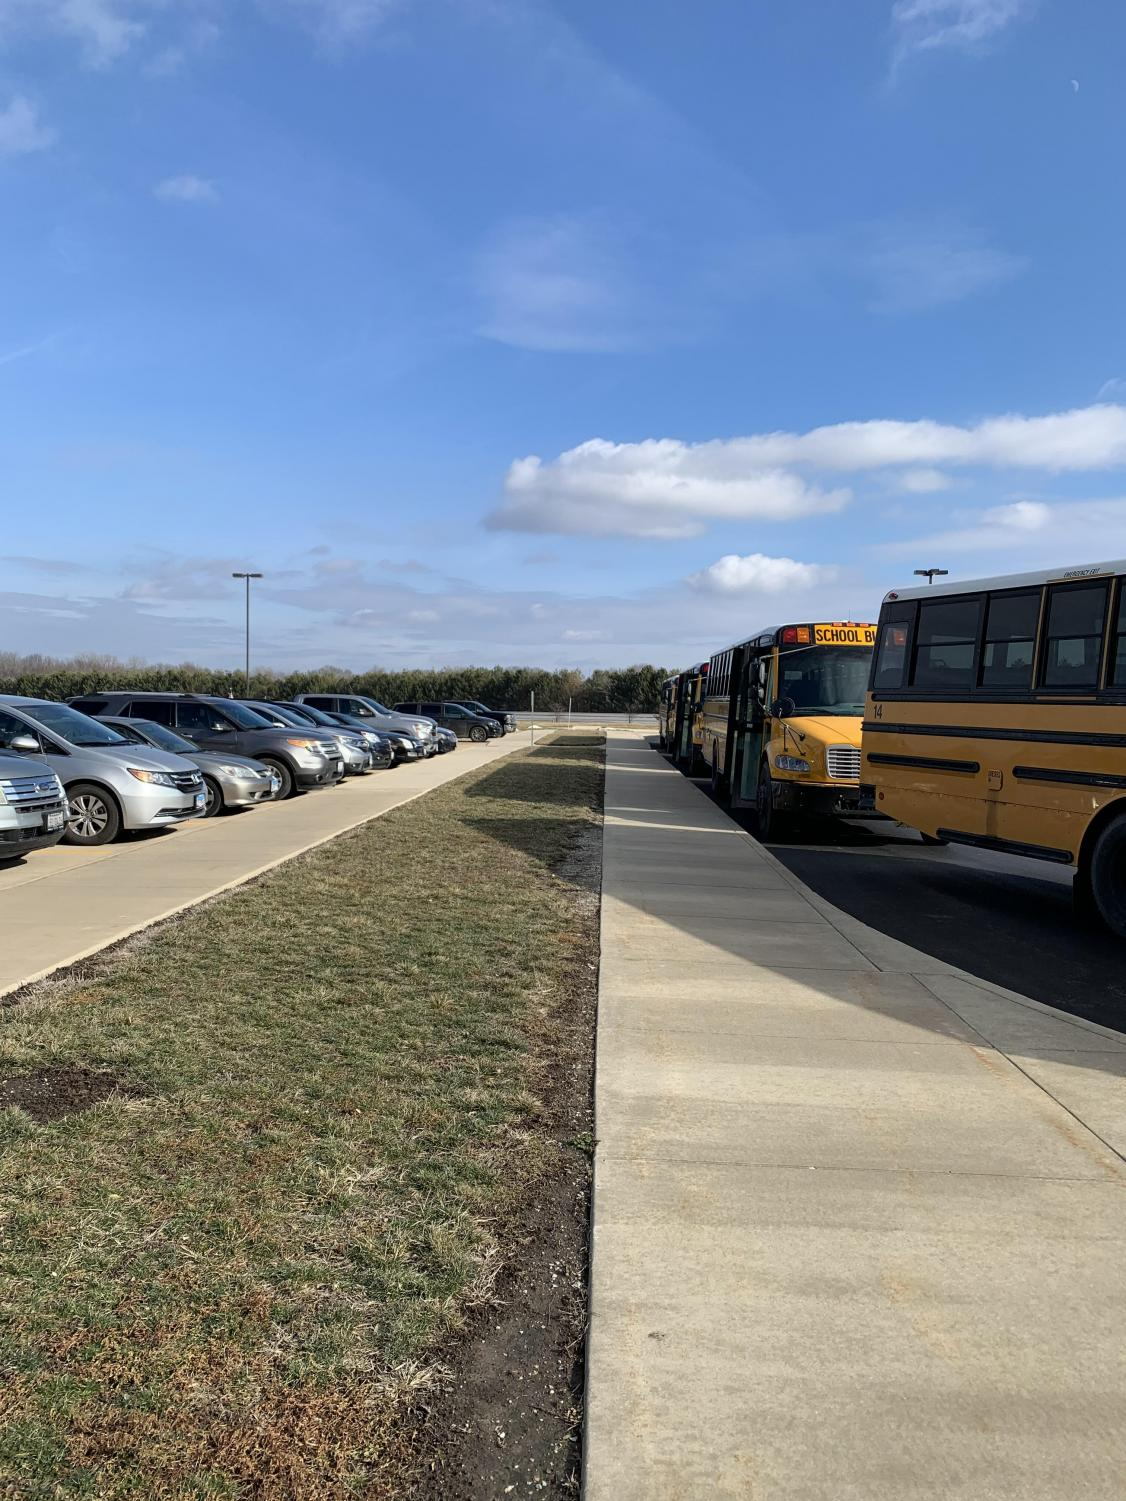 The school parking lot sits full for the first time since last November.